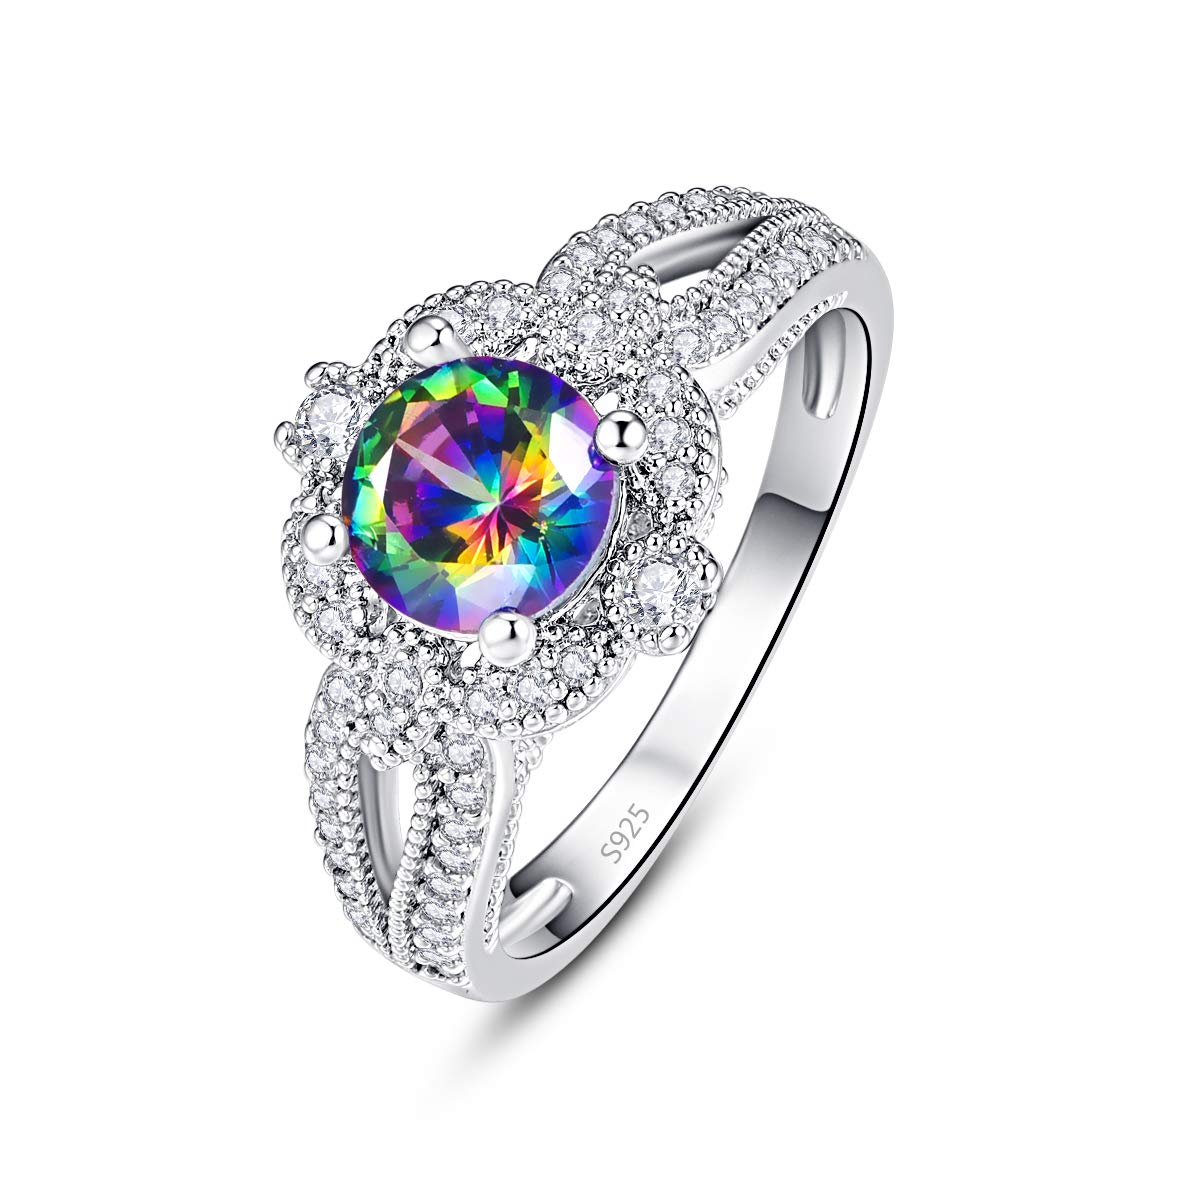 Empsoul 925 Sterling Silver Created Round Cut Mystic Rainbow Topaz 4-Prong Cubic Zirconia Romantic Wedding Ring for Her Size 9